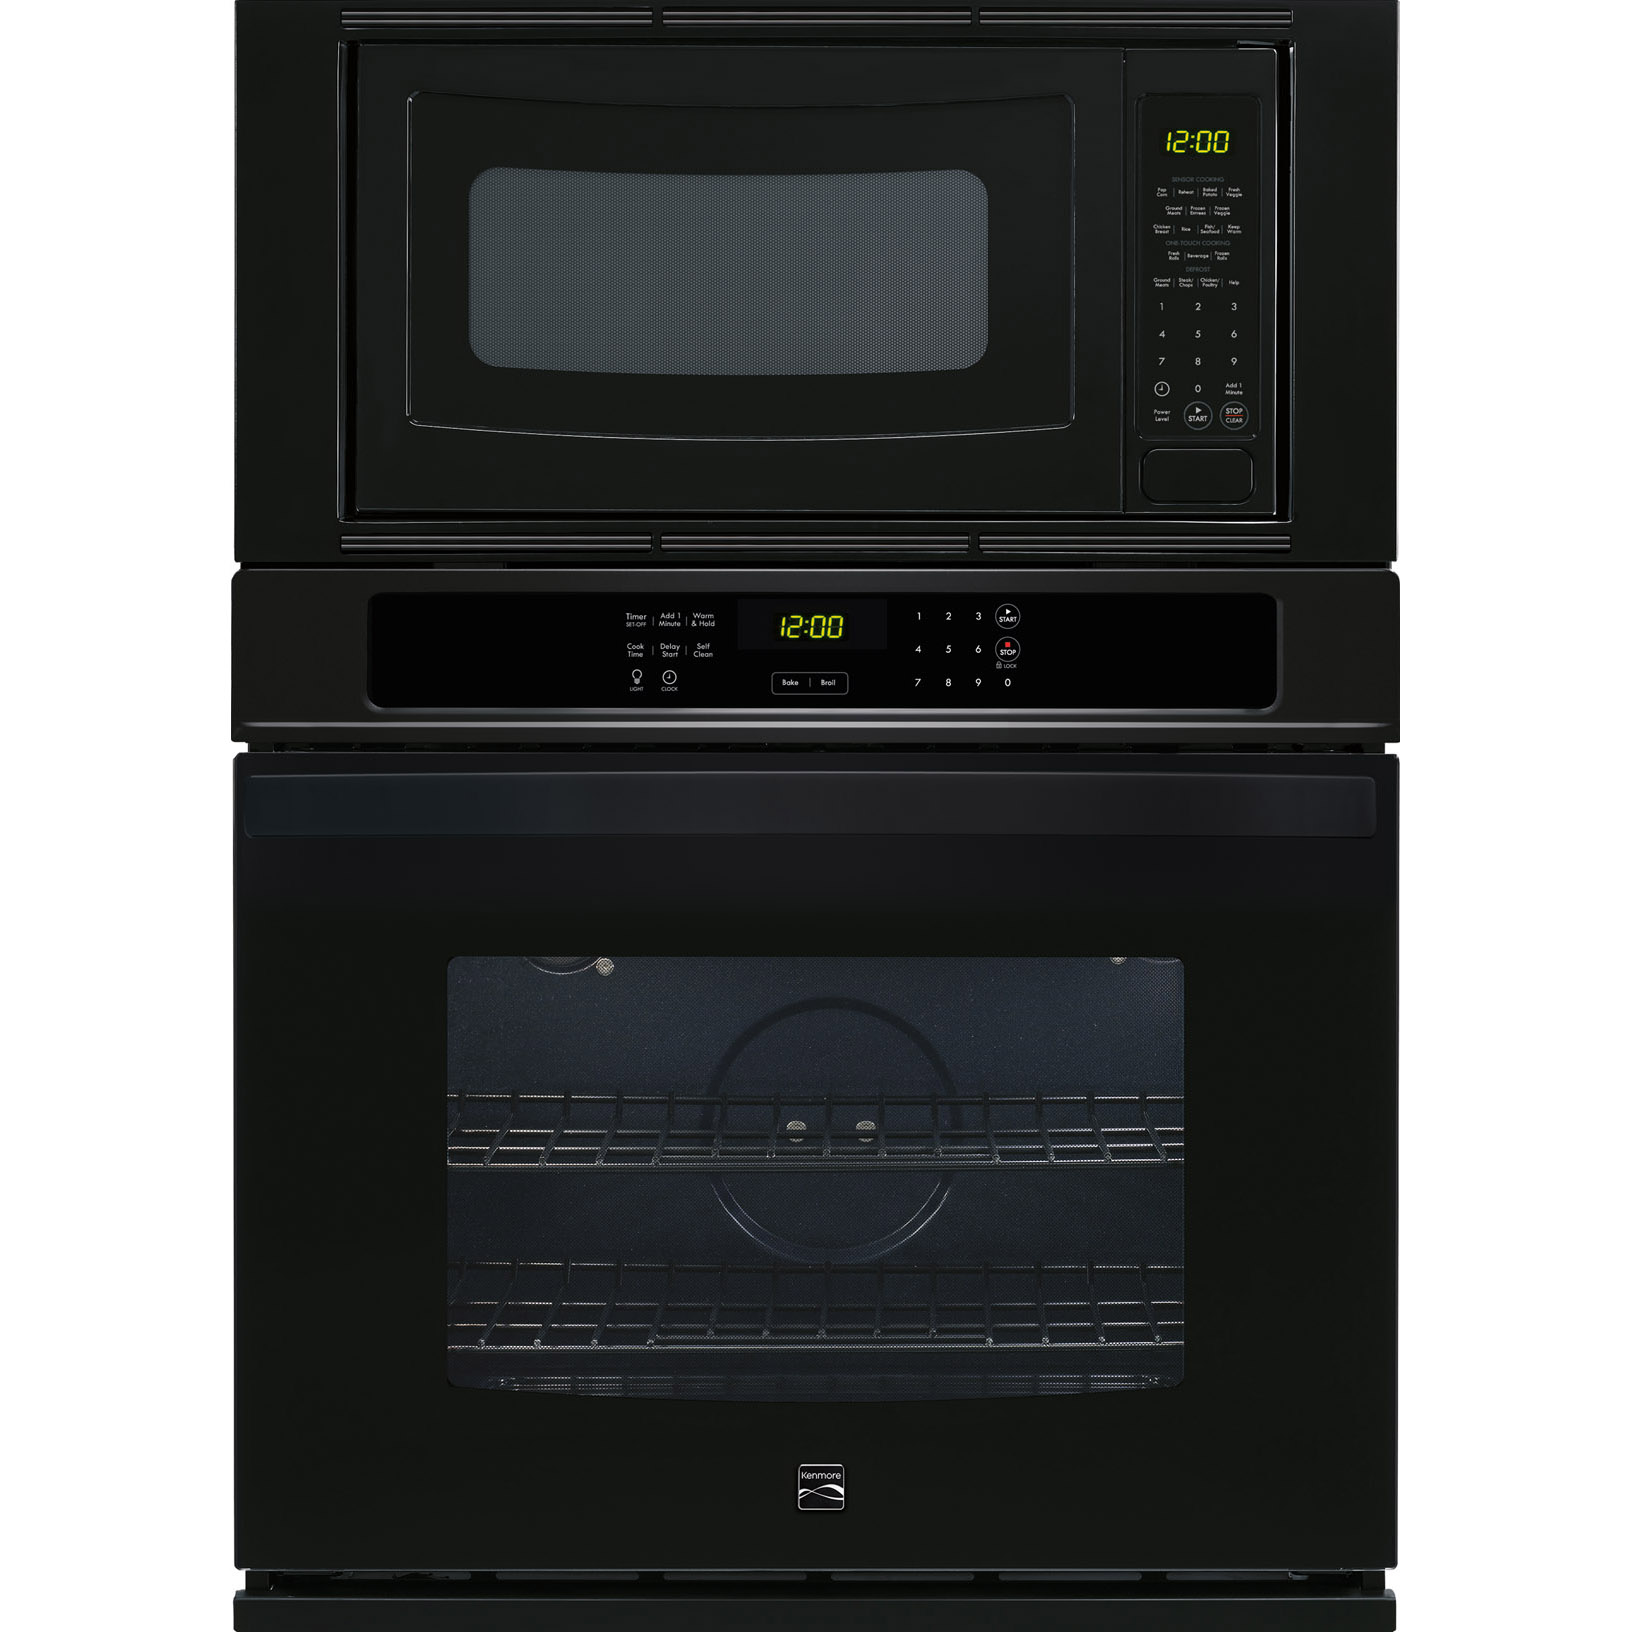 Kenmore 49619 30 Electric Combination Wall Oven - Black